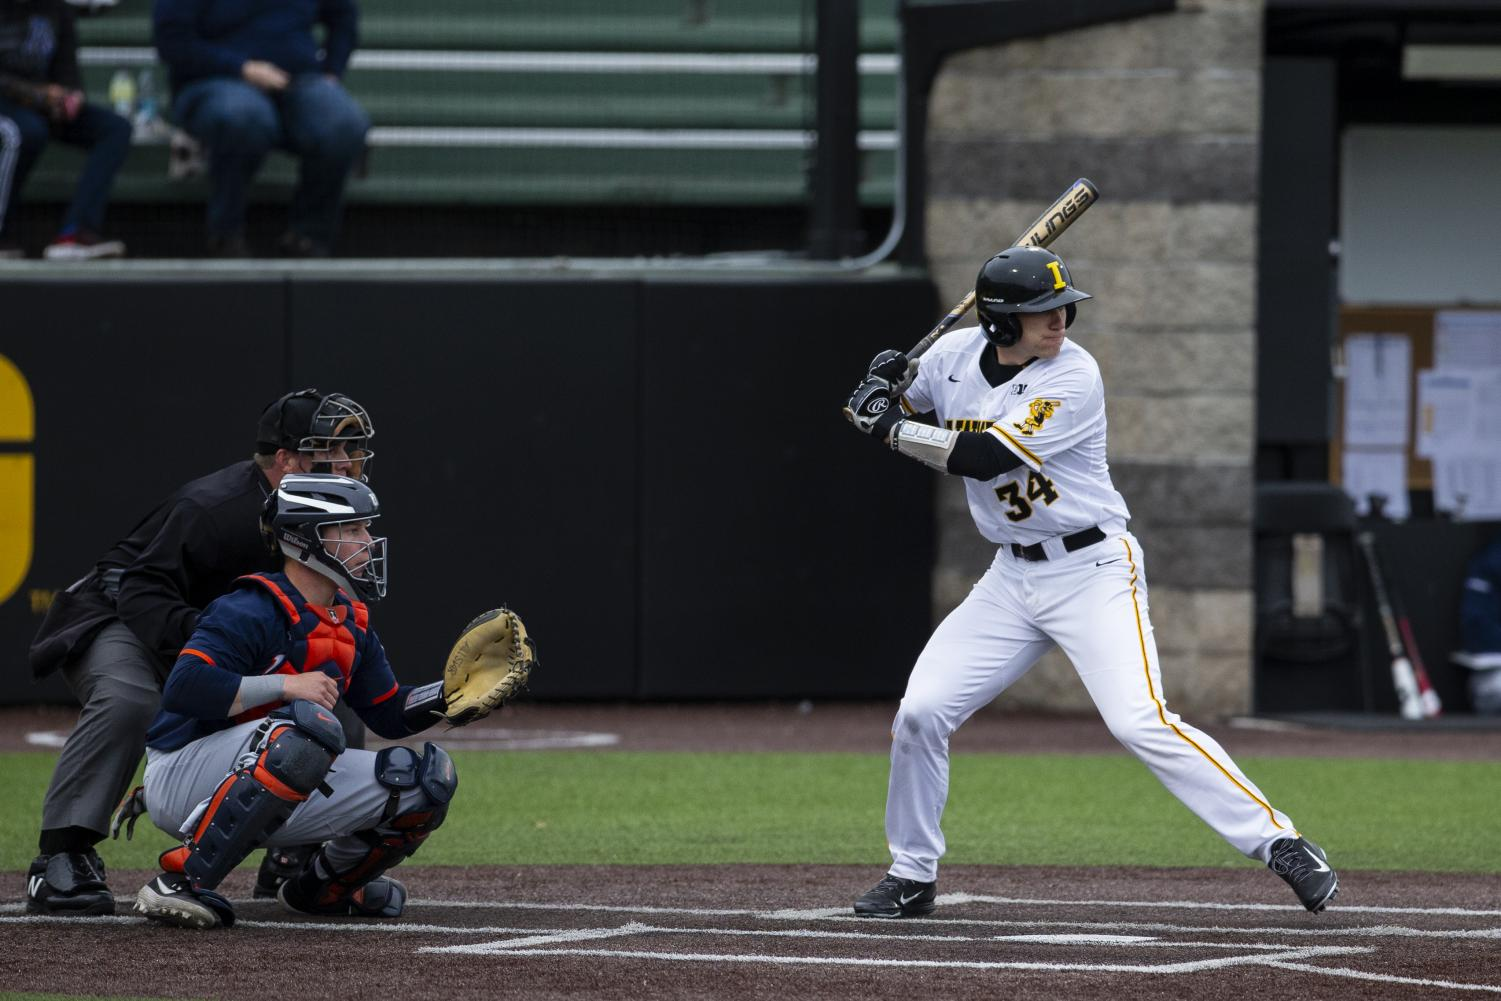 Iowa catcher Austin Martin bats against Illinois on March 29, 2019. The Hawkeyes defeated the Illini, 8-4.